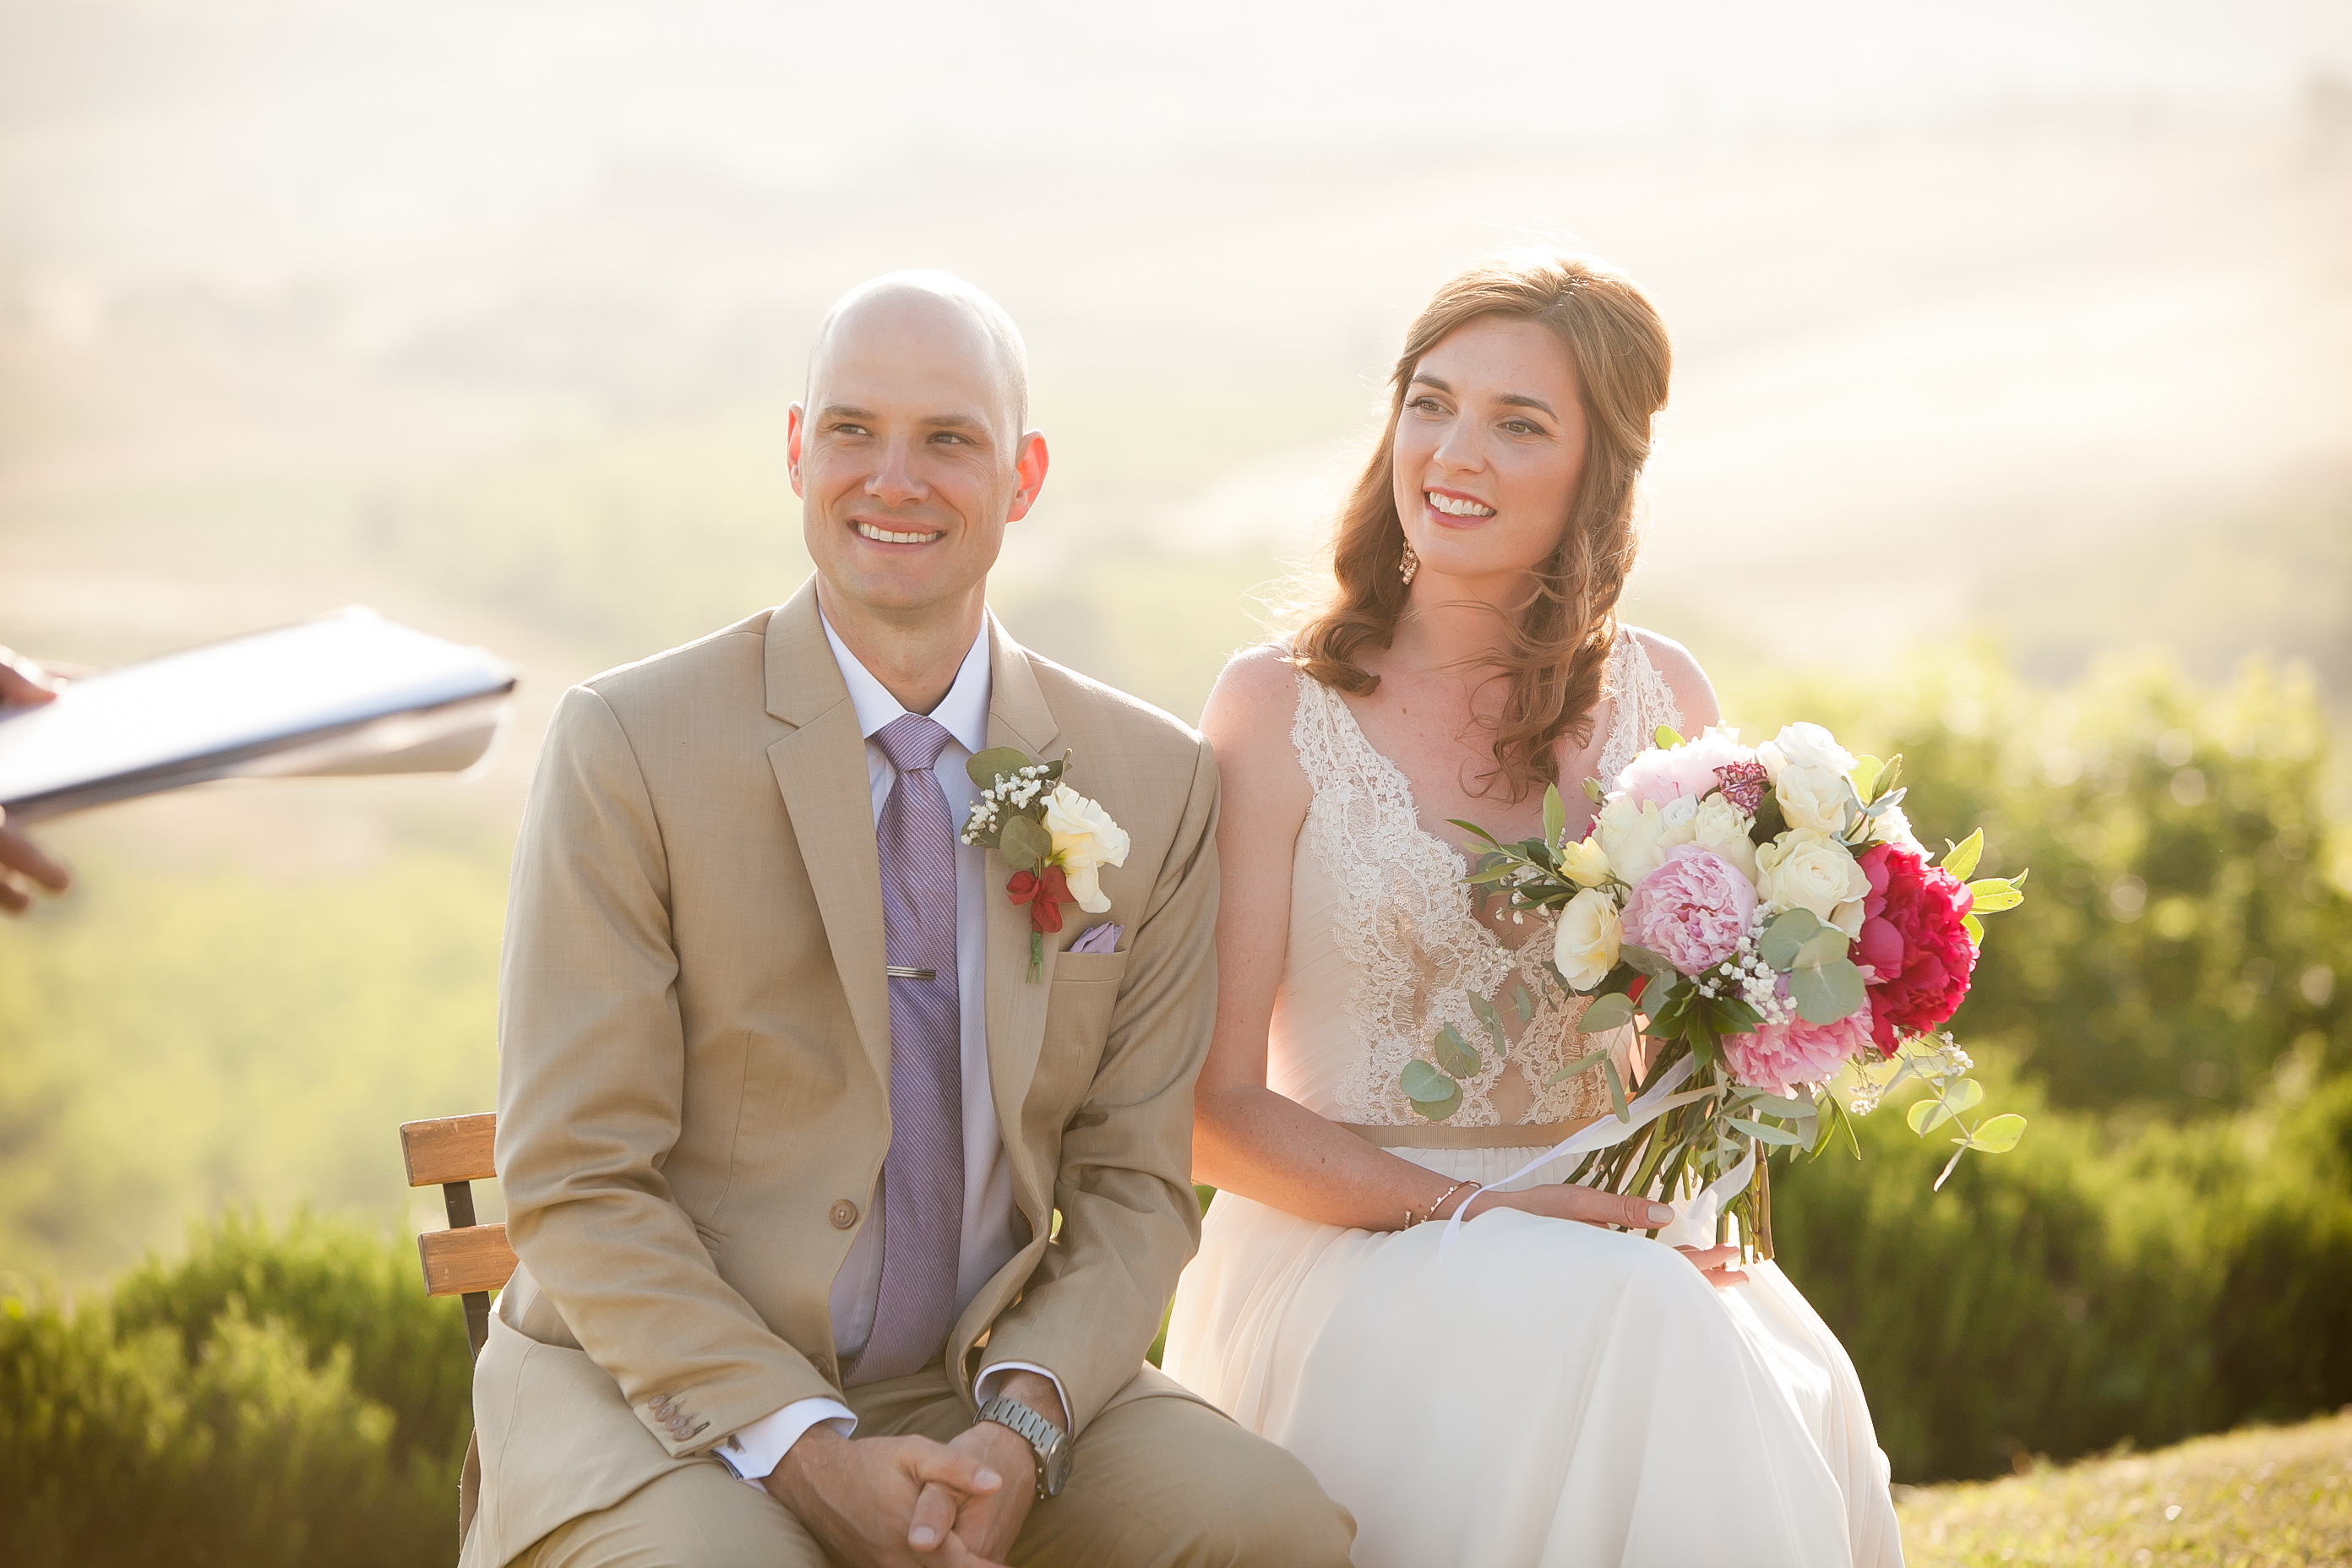 Bride & Groom Photo - Countryside Wedding in Tuscany